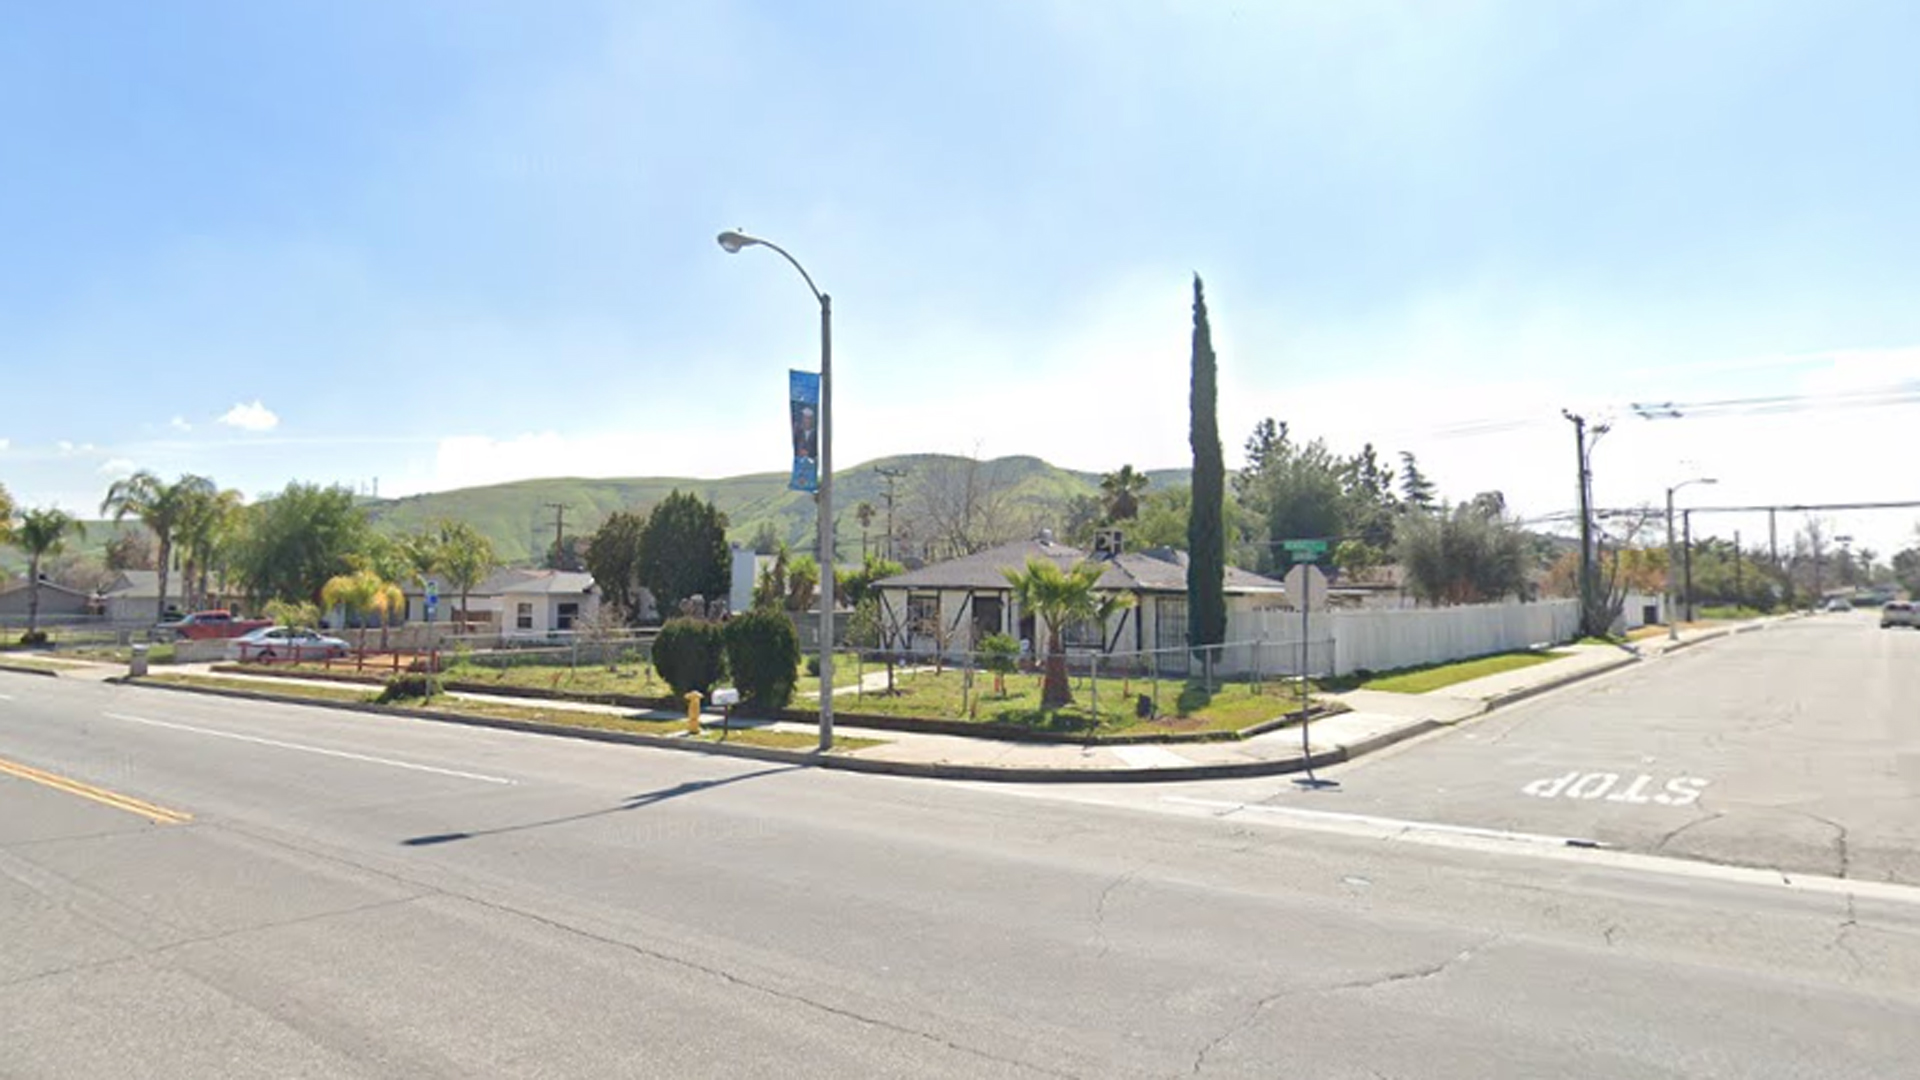 The intersection of Lakewood Street and Kendall Drive in San Bernardino appears in an image from Google Maps.